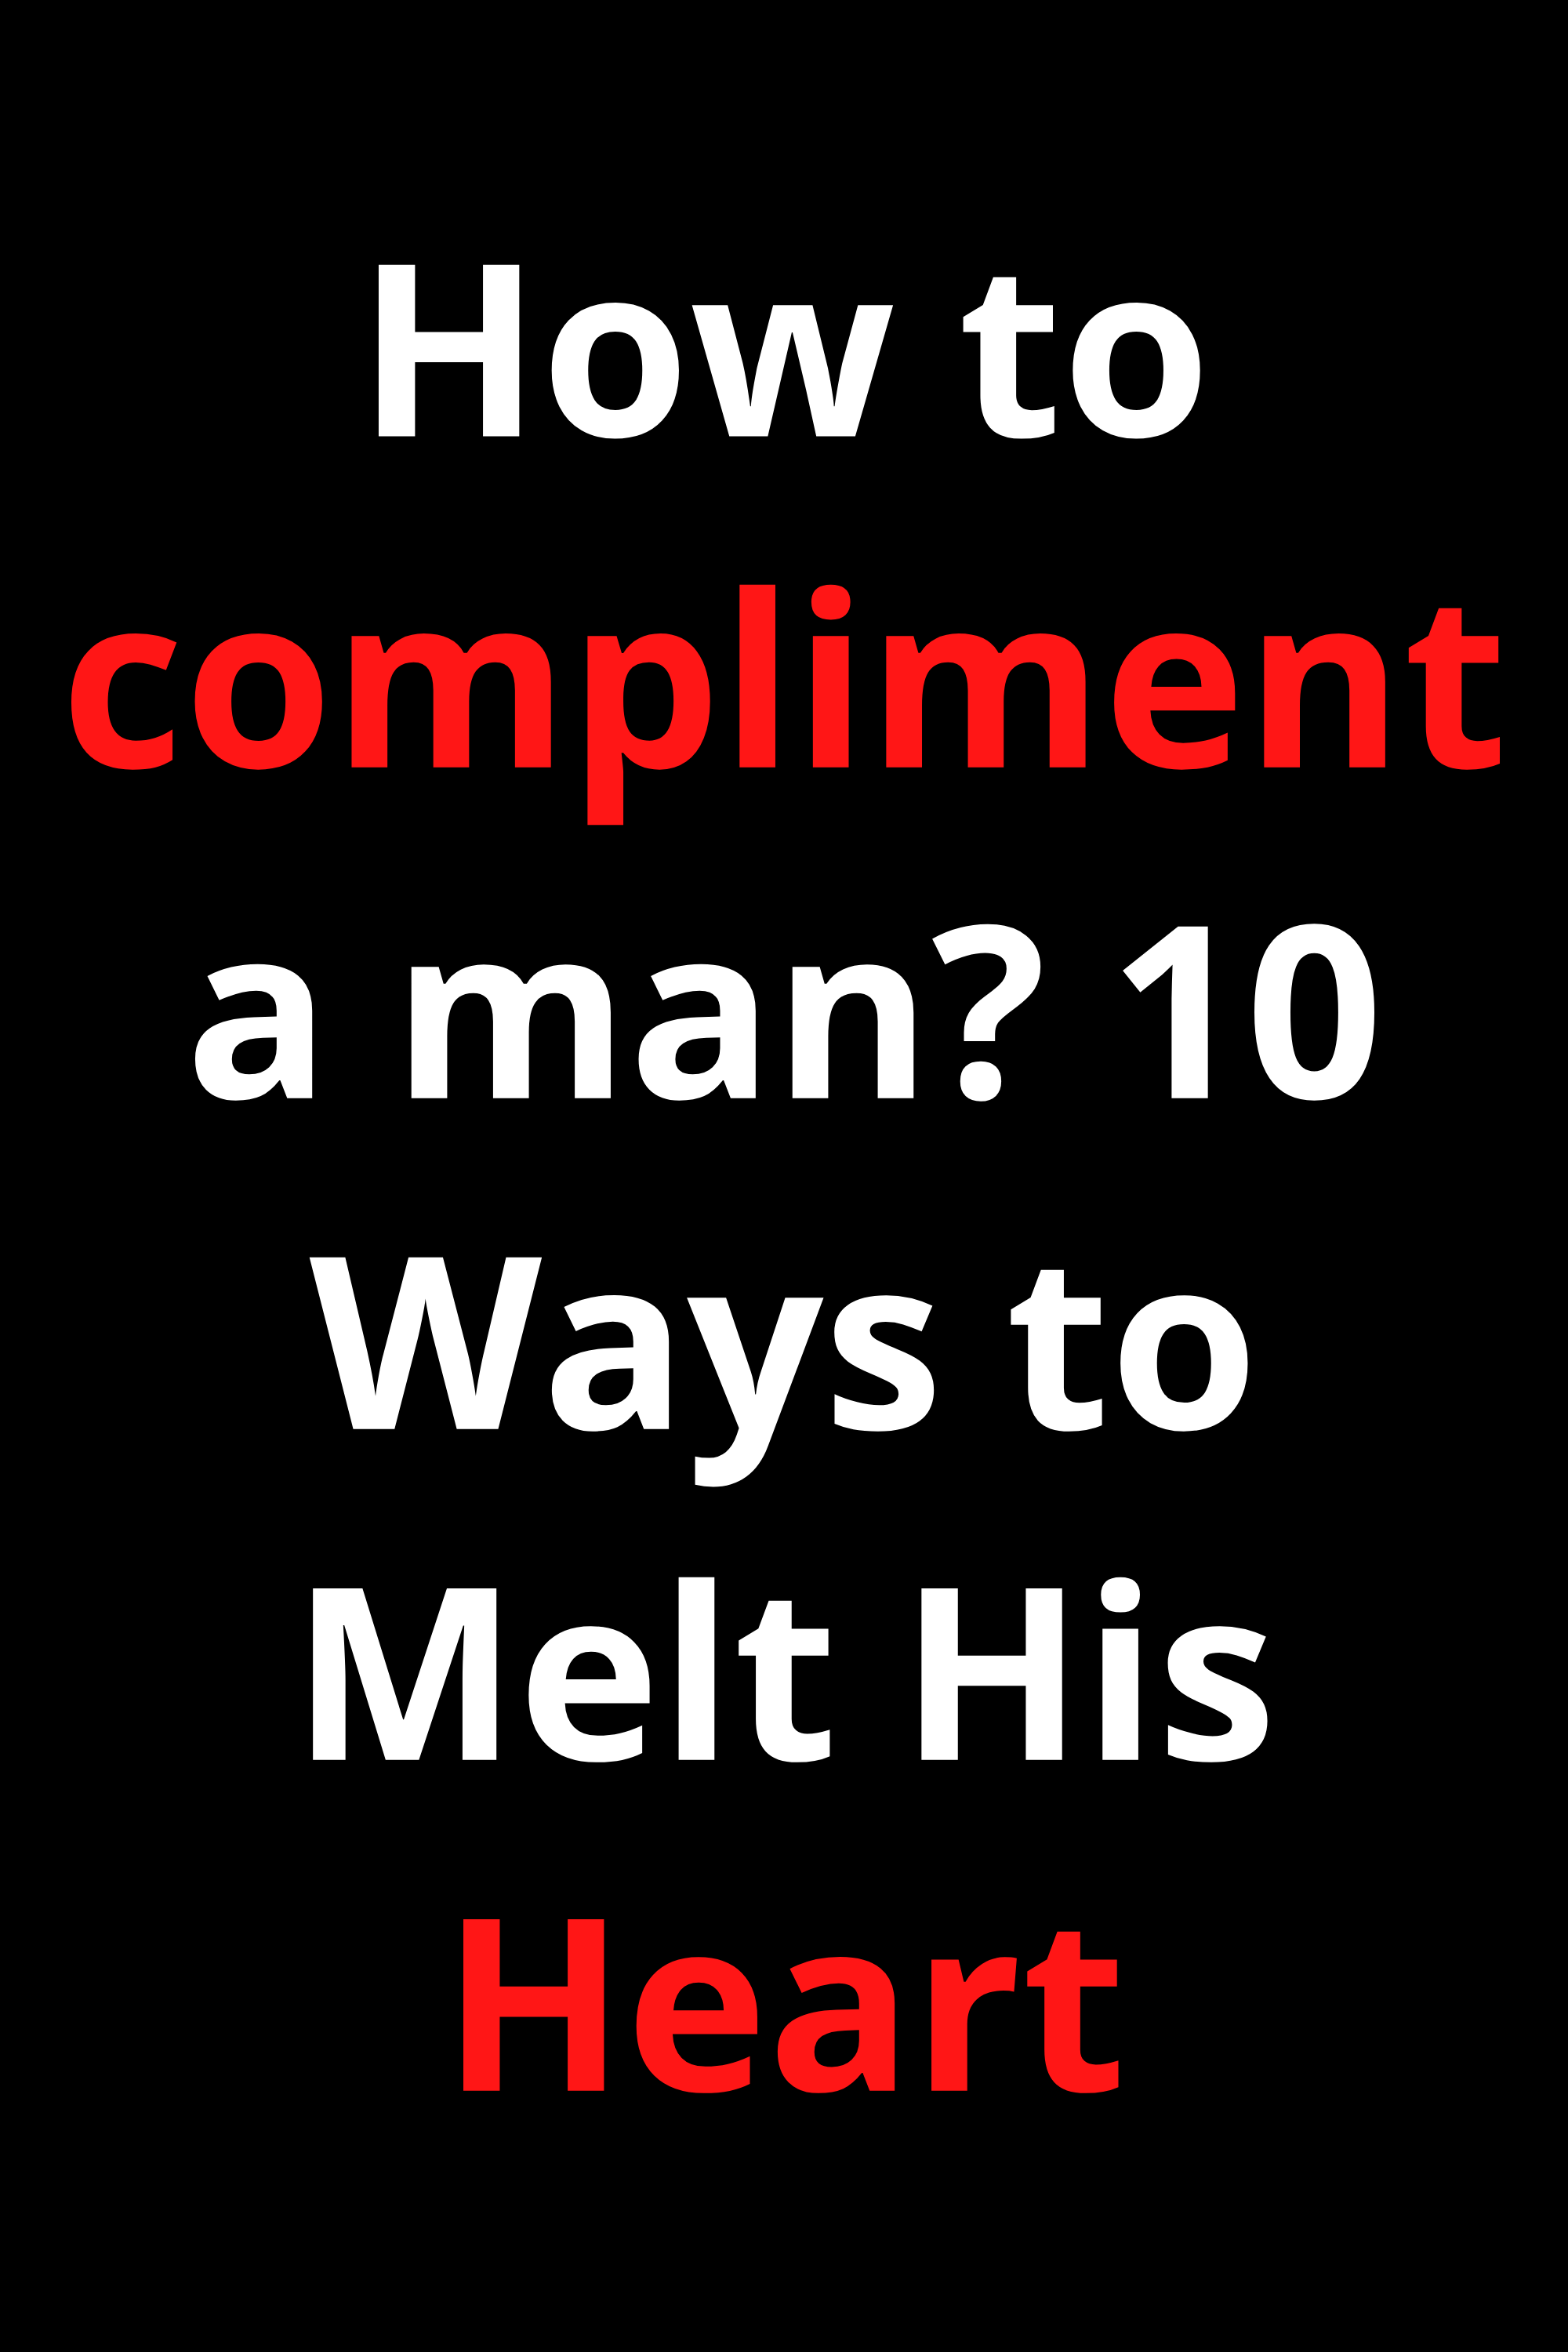 How to compliment a man? 10 Ways to Melt His Heart